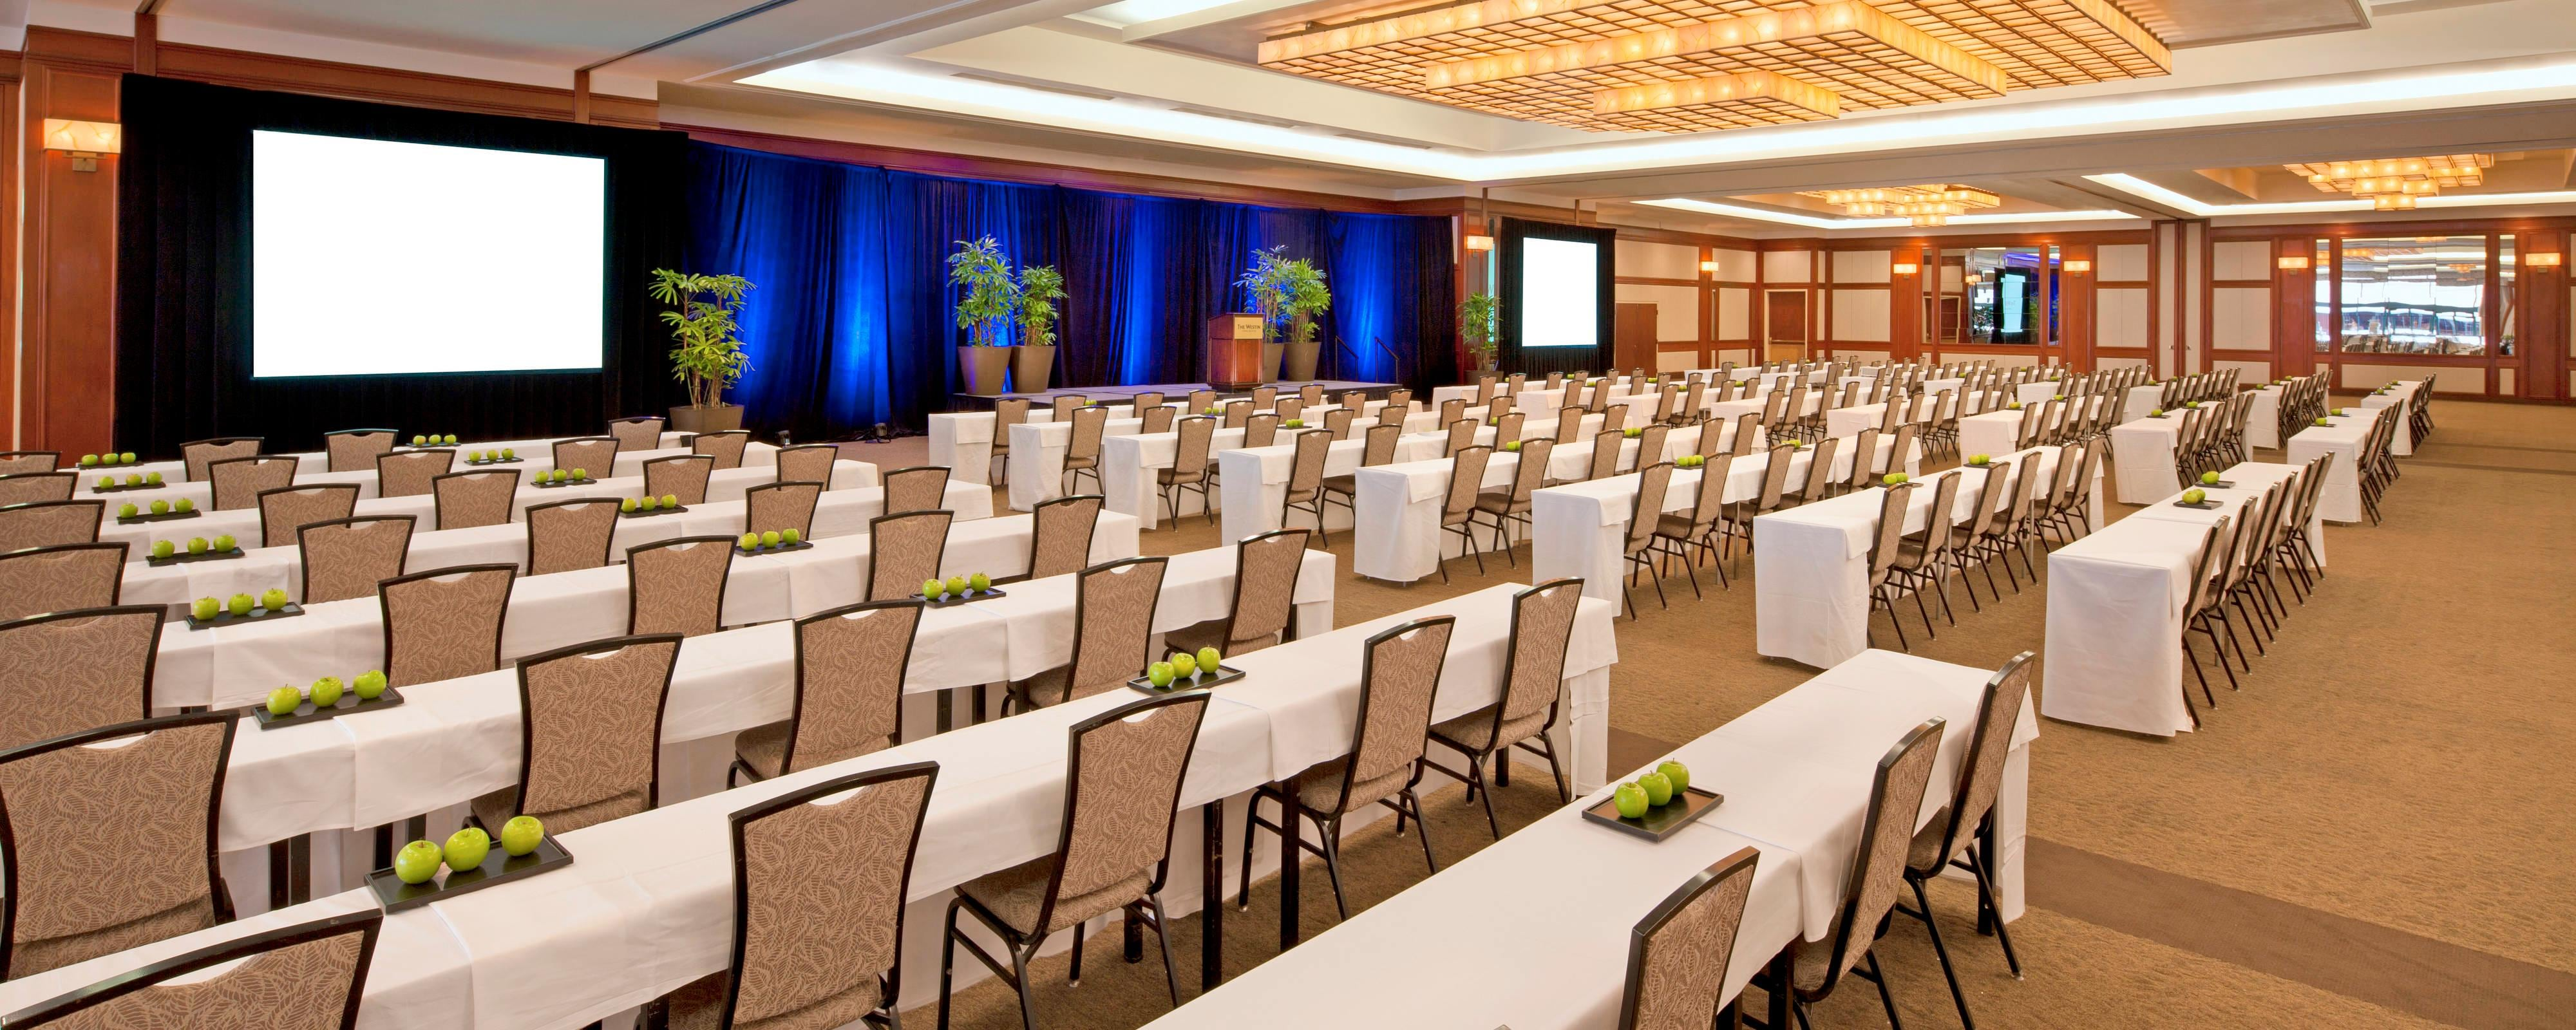 Venue E For Long Beach Meeting Rooms The Westin